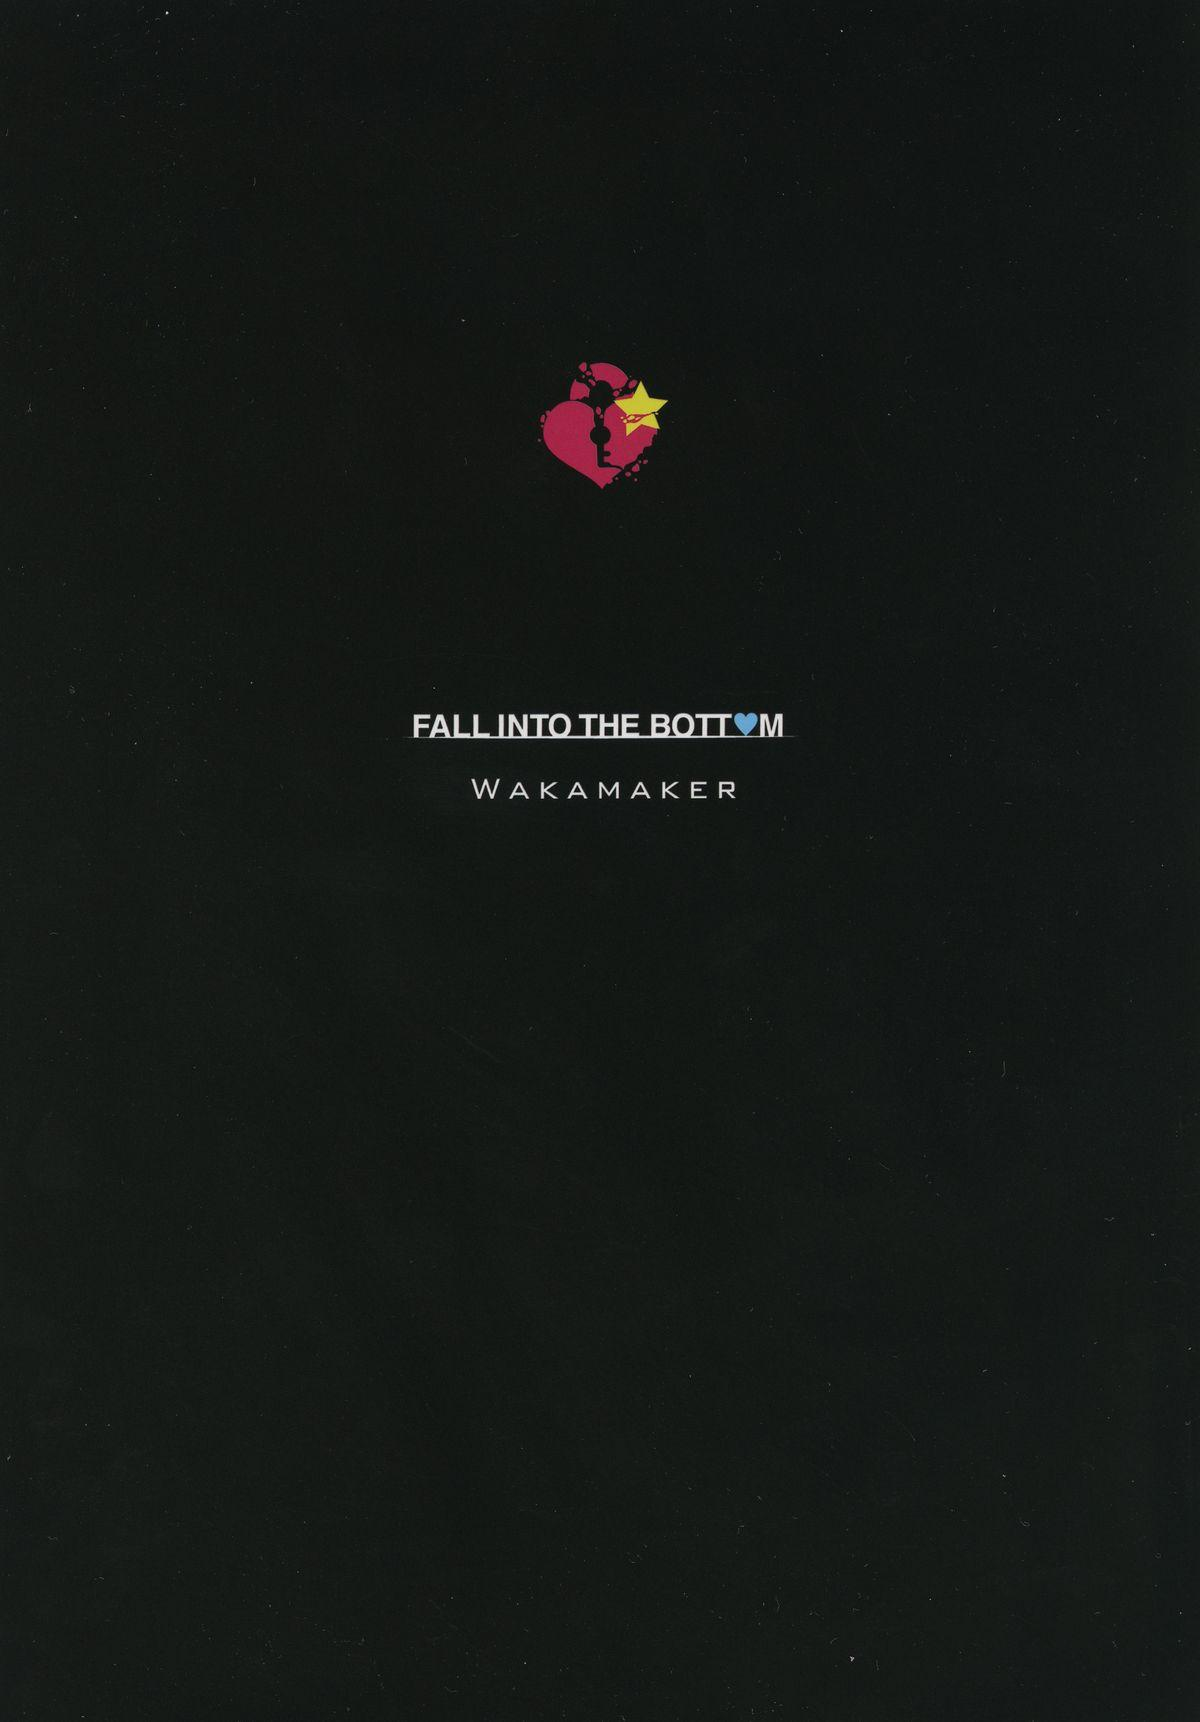 FALL INTO THE BOTTOM 19